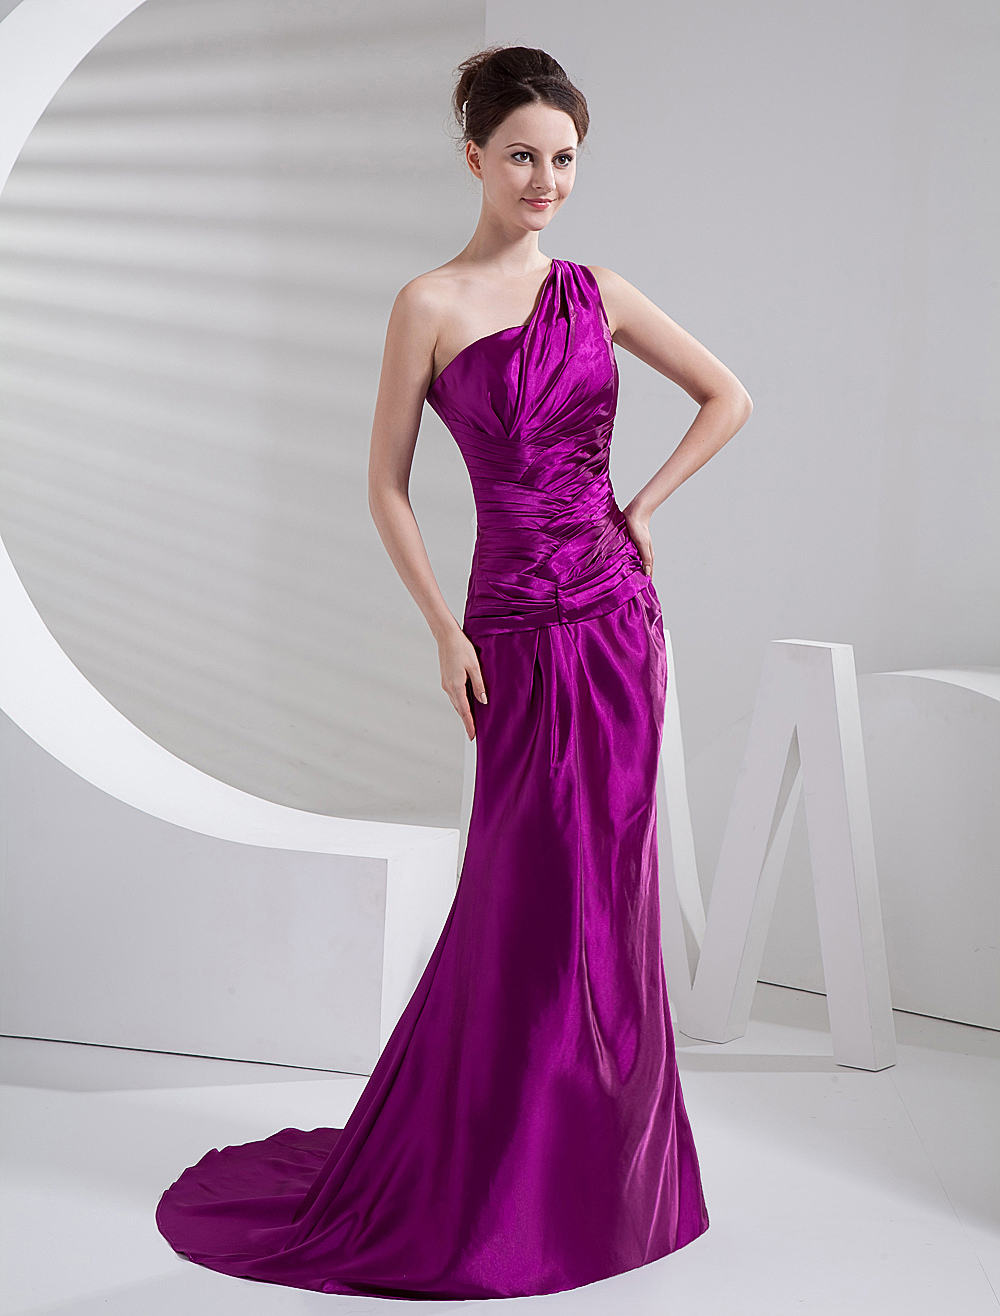 Elegant Grape Purple Elastic Woven Satin One Shoulder Prom Dress